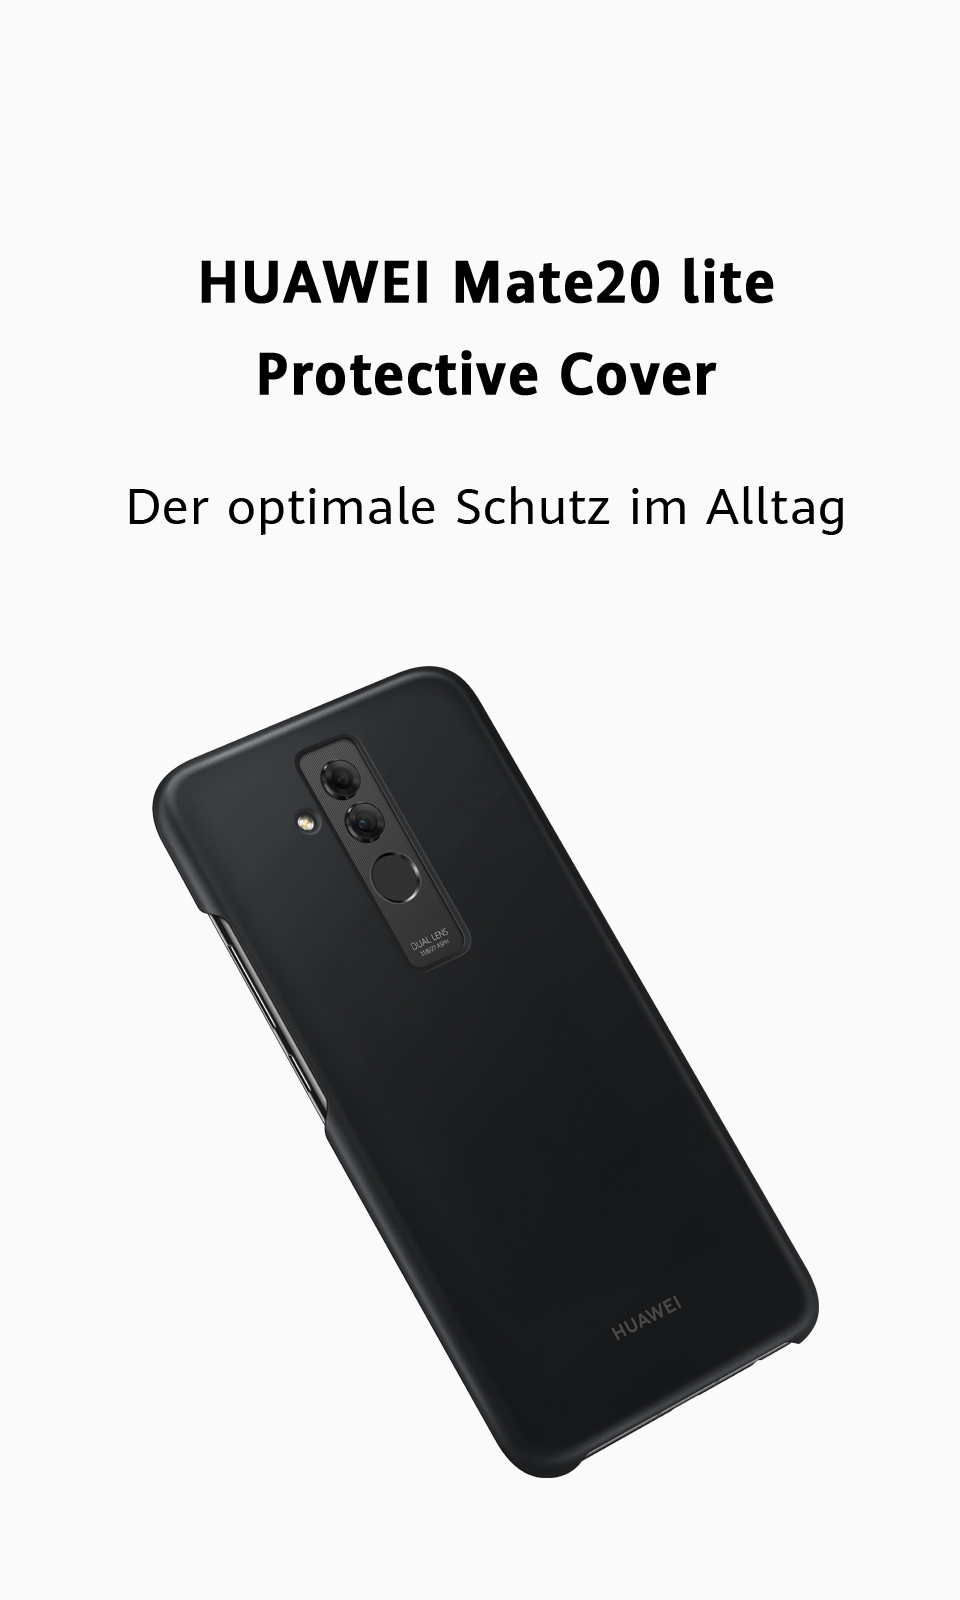 HUAWEI Mate20 lite Protective Cover